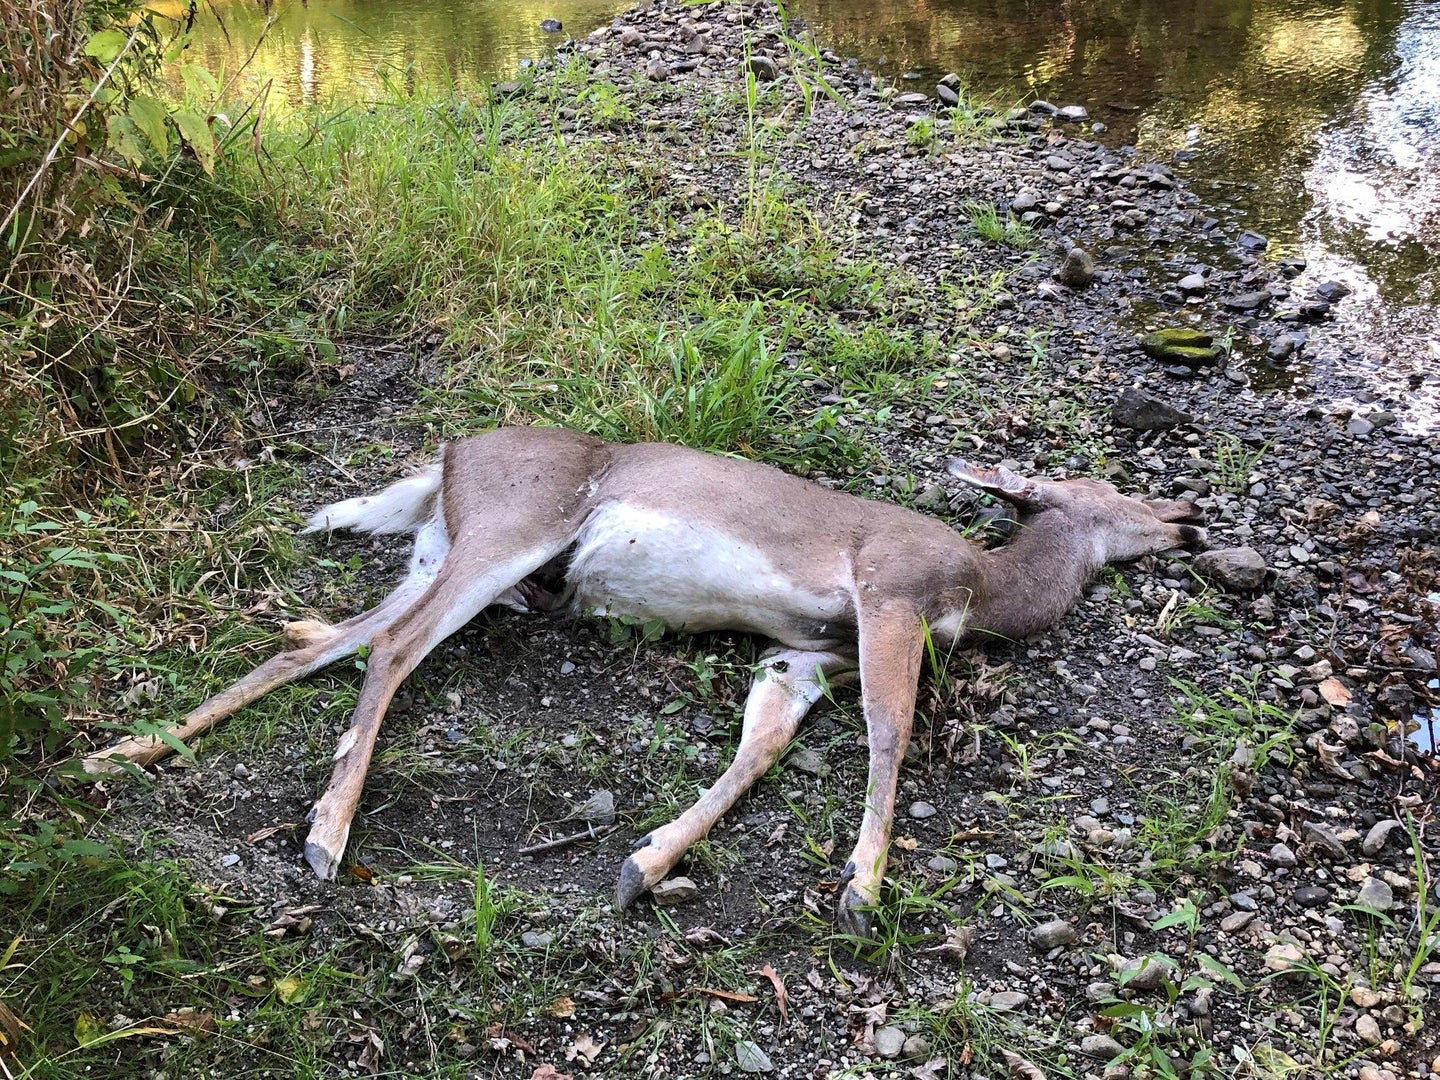 A whitetail that died near water due to an EHD outbreak.